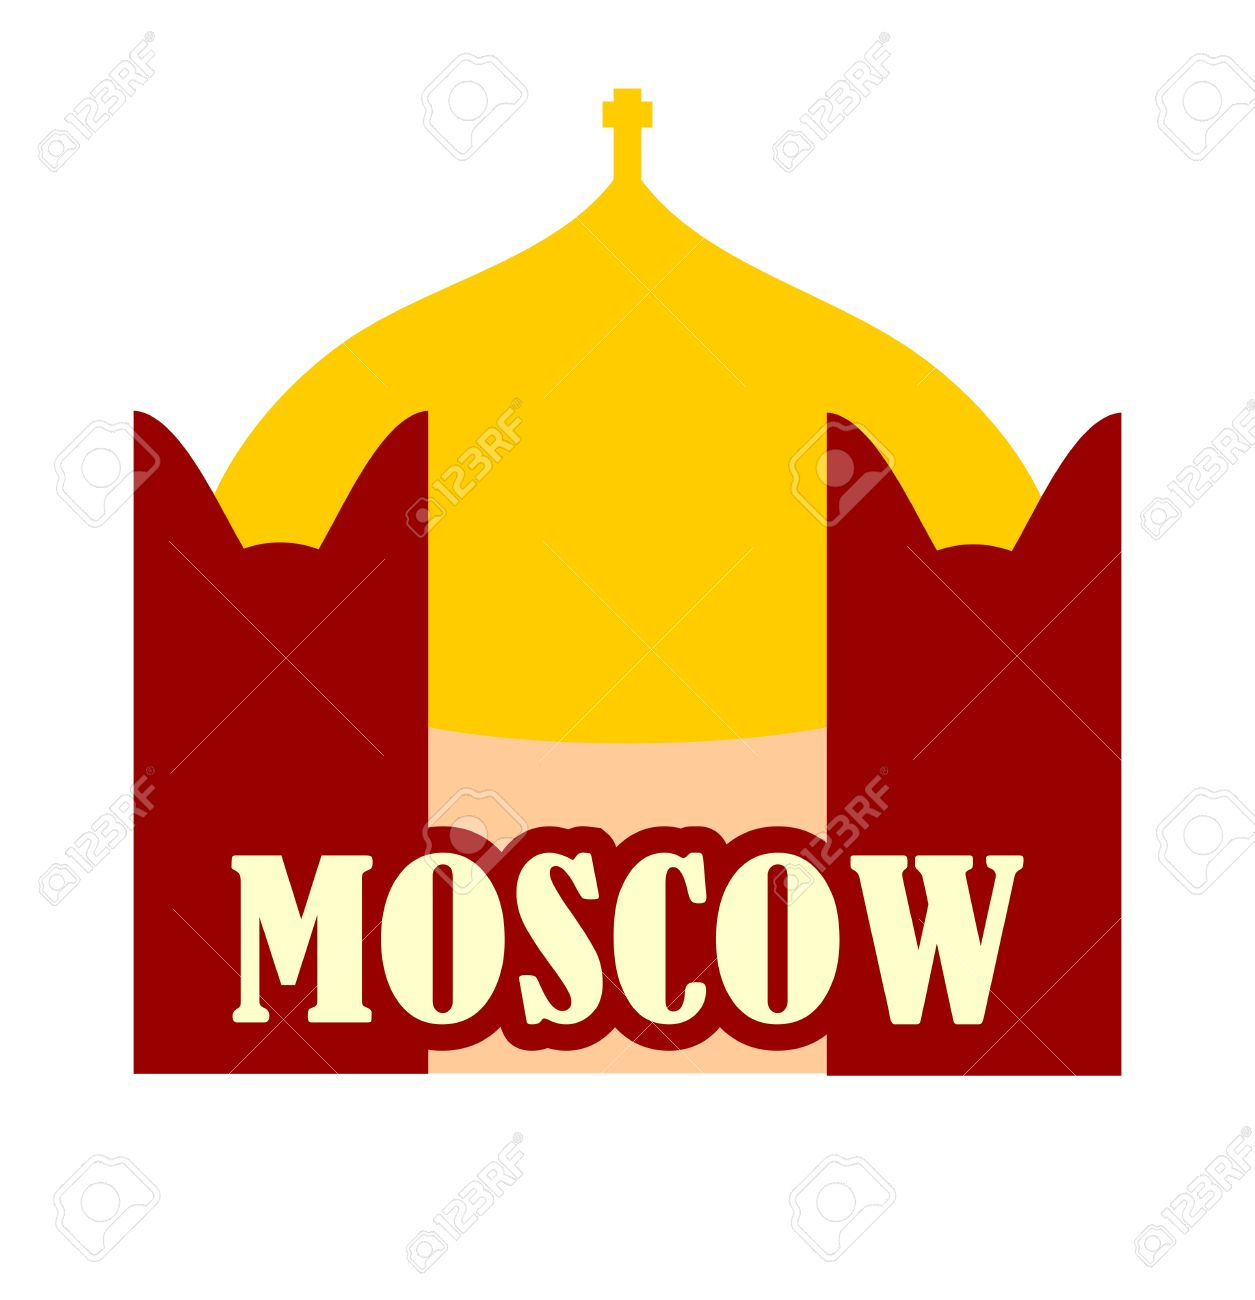 Minimalist Icon Of Moscow City, Russia. Flat Style. Church.